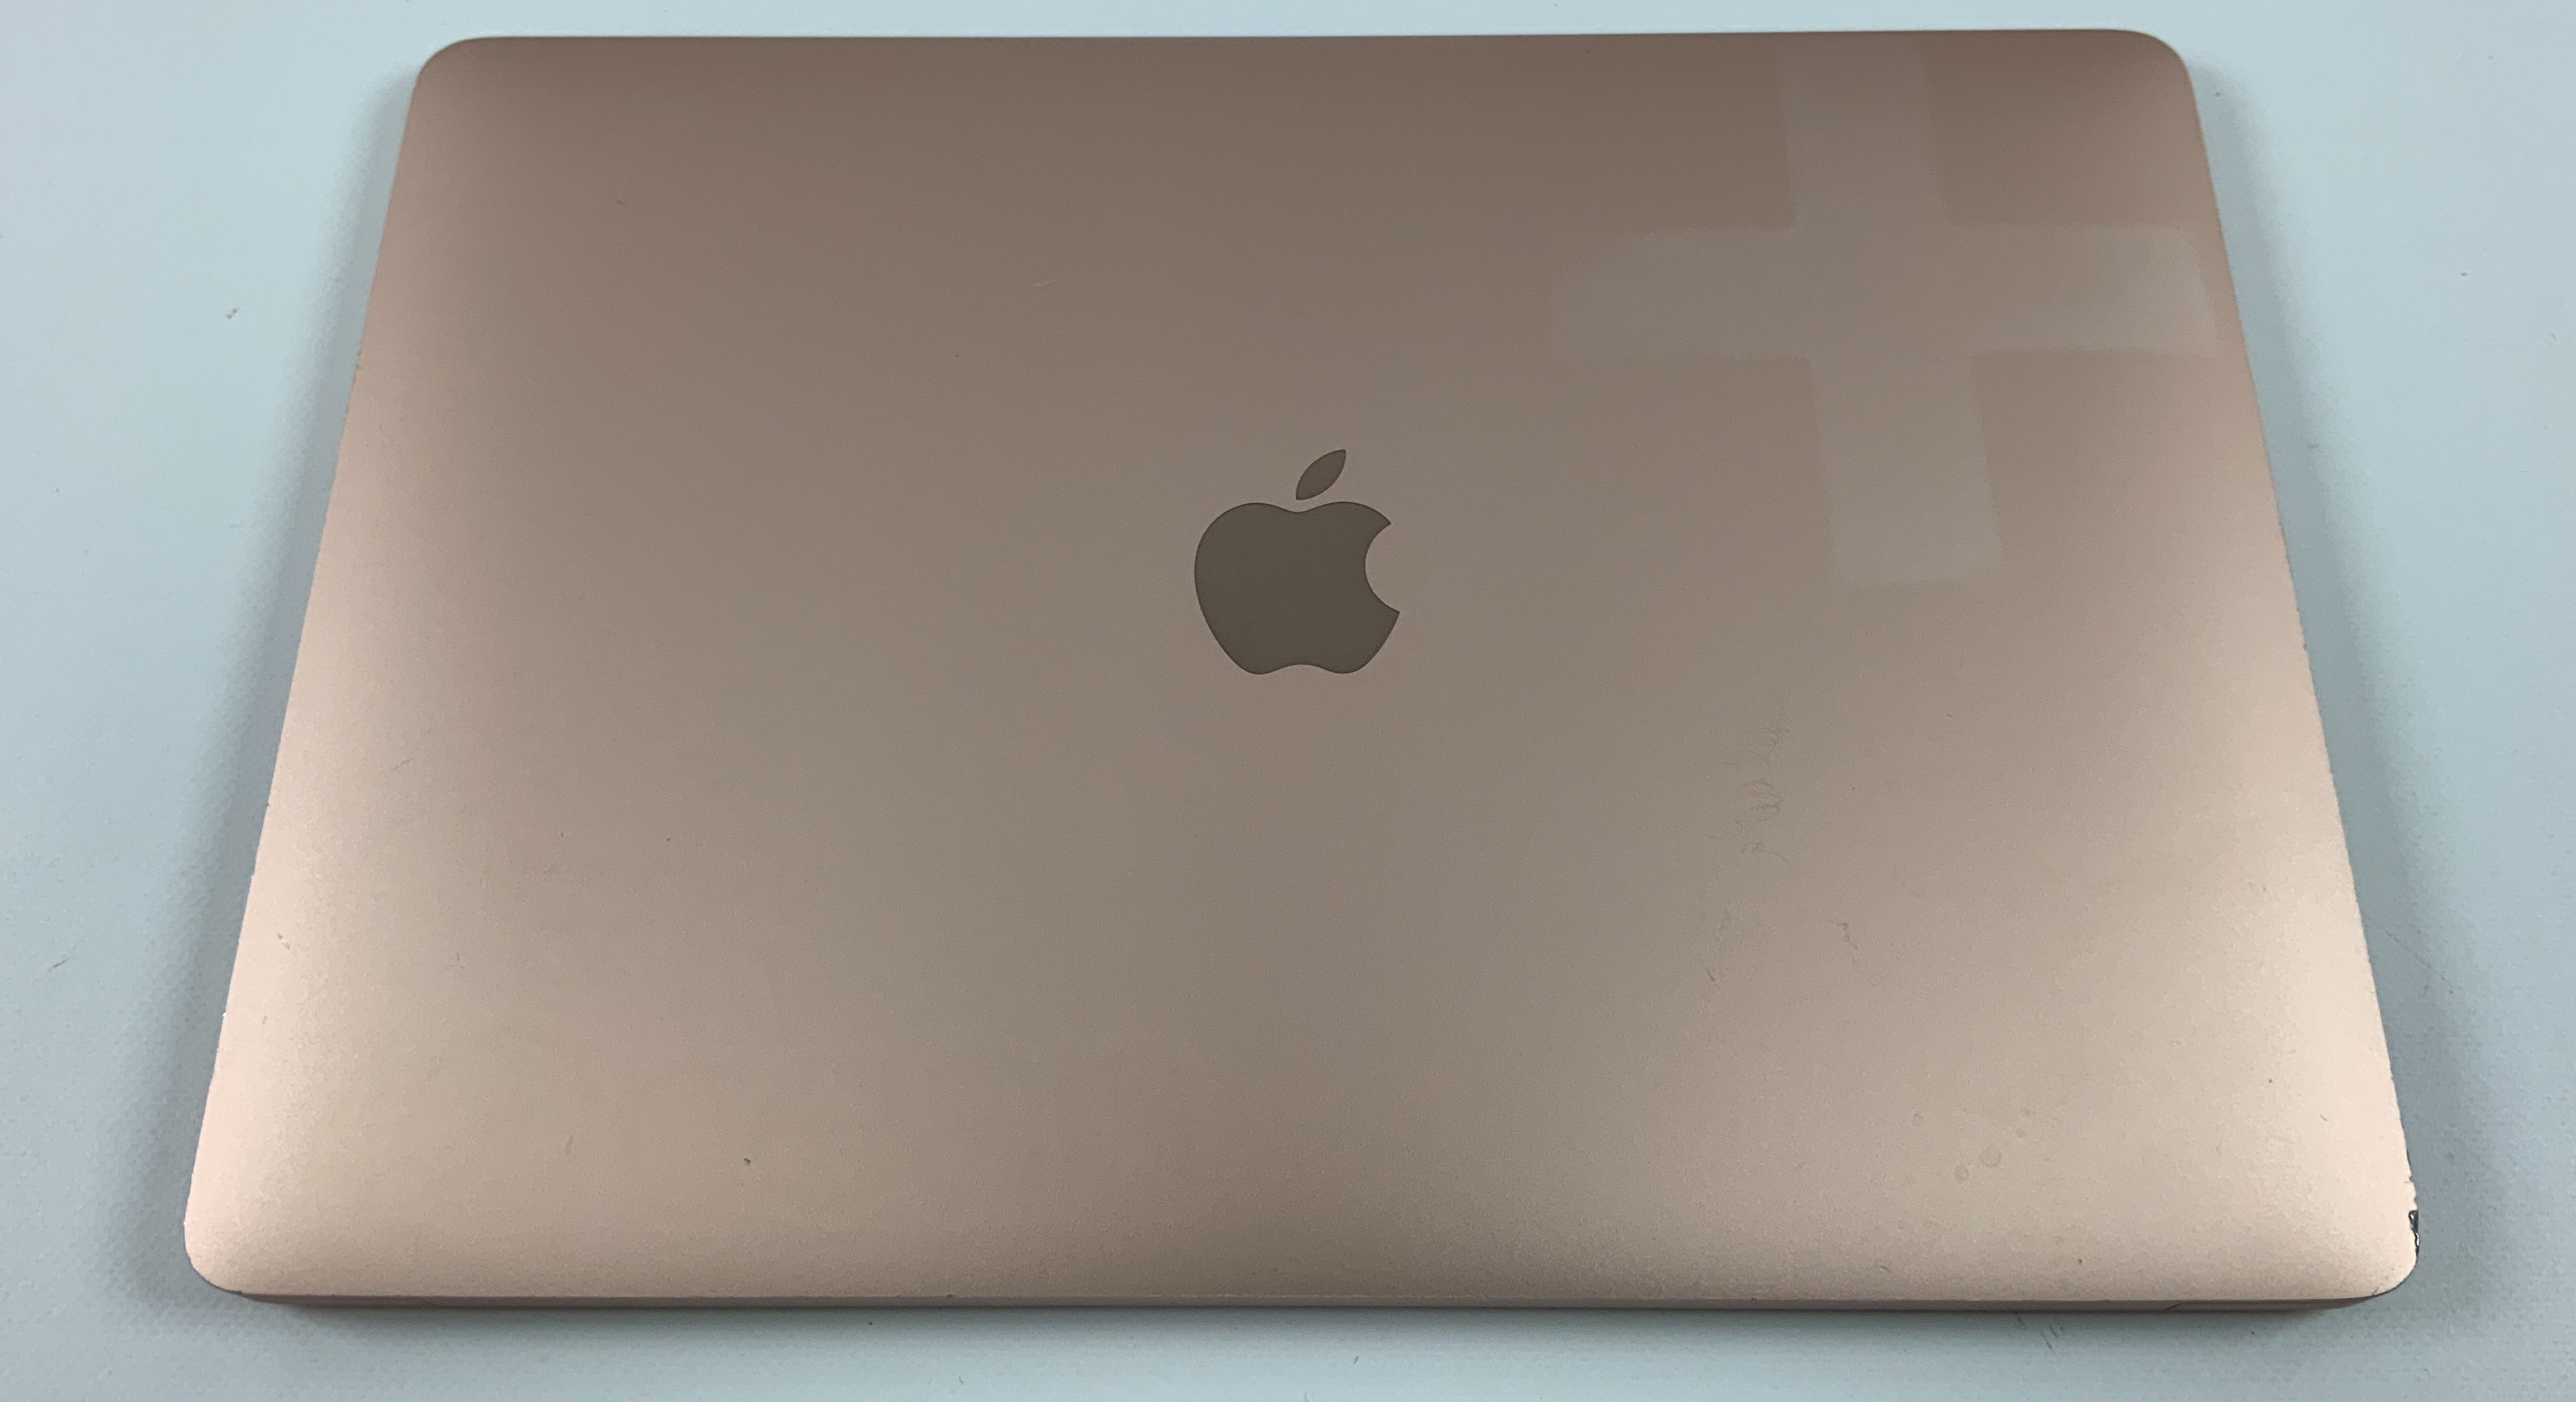 "MacBook Air 13"" Late 2018 (Intel Core i5 1.6 GHz 8 GB RAM 128 GB SSD), Gold, Intel Core i5 1.6 GHz, 8 GB RAM, 128 GB SSD, Bild 2"